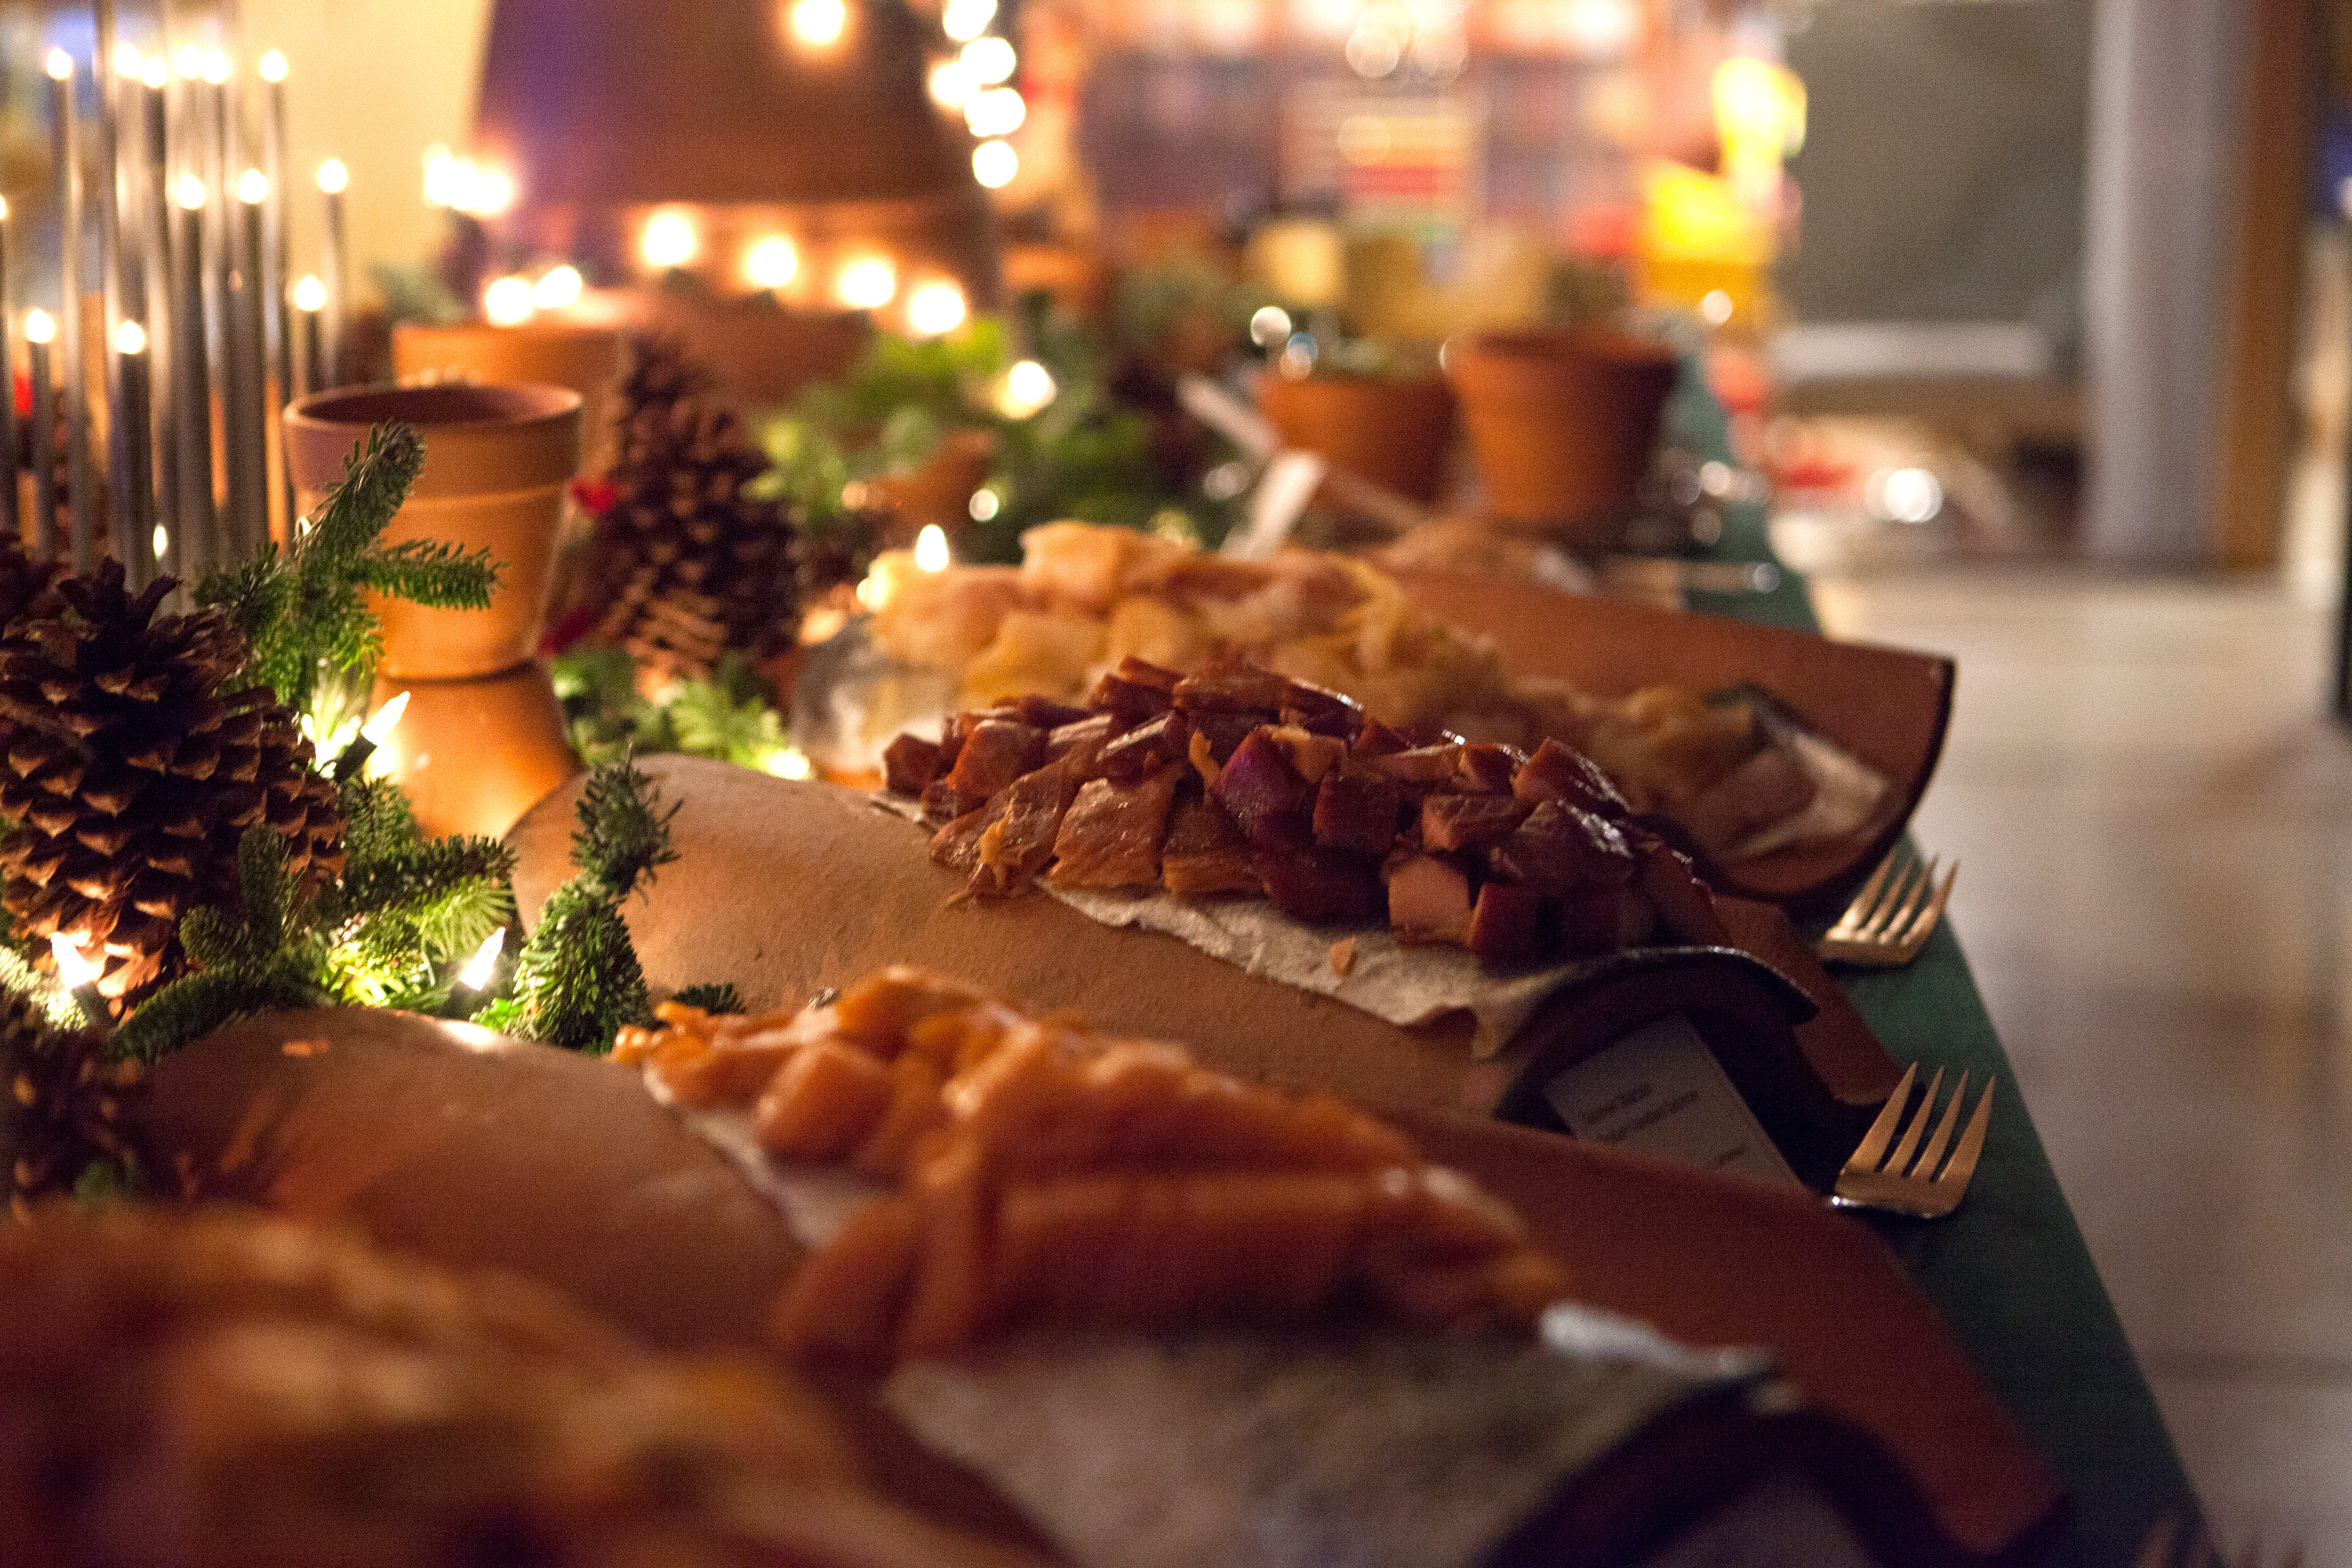 This year's julbord at the Swedish embassy offered eight types of herring, 11 kinds of fish and cheese, 14 warm dishes, and finally, a diet-killing 30 desserts.